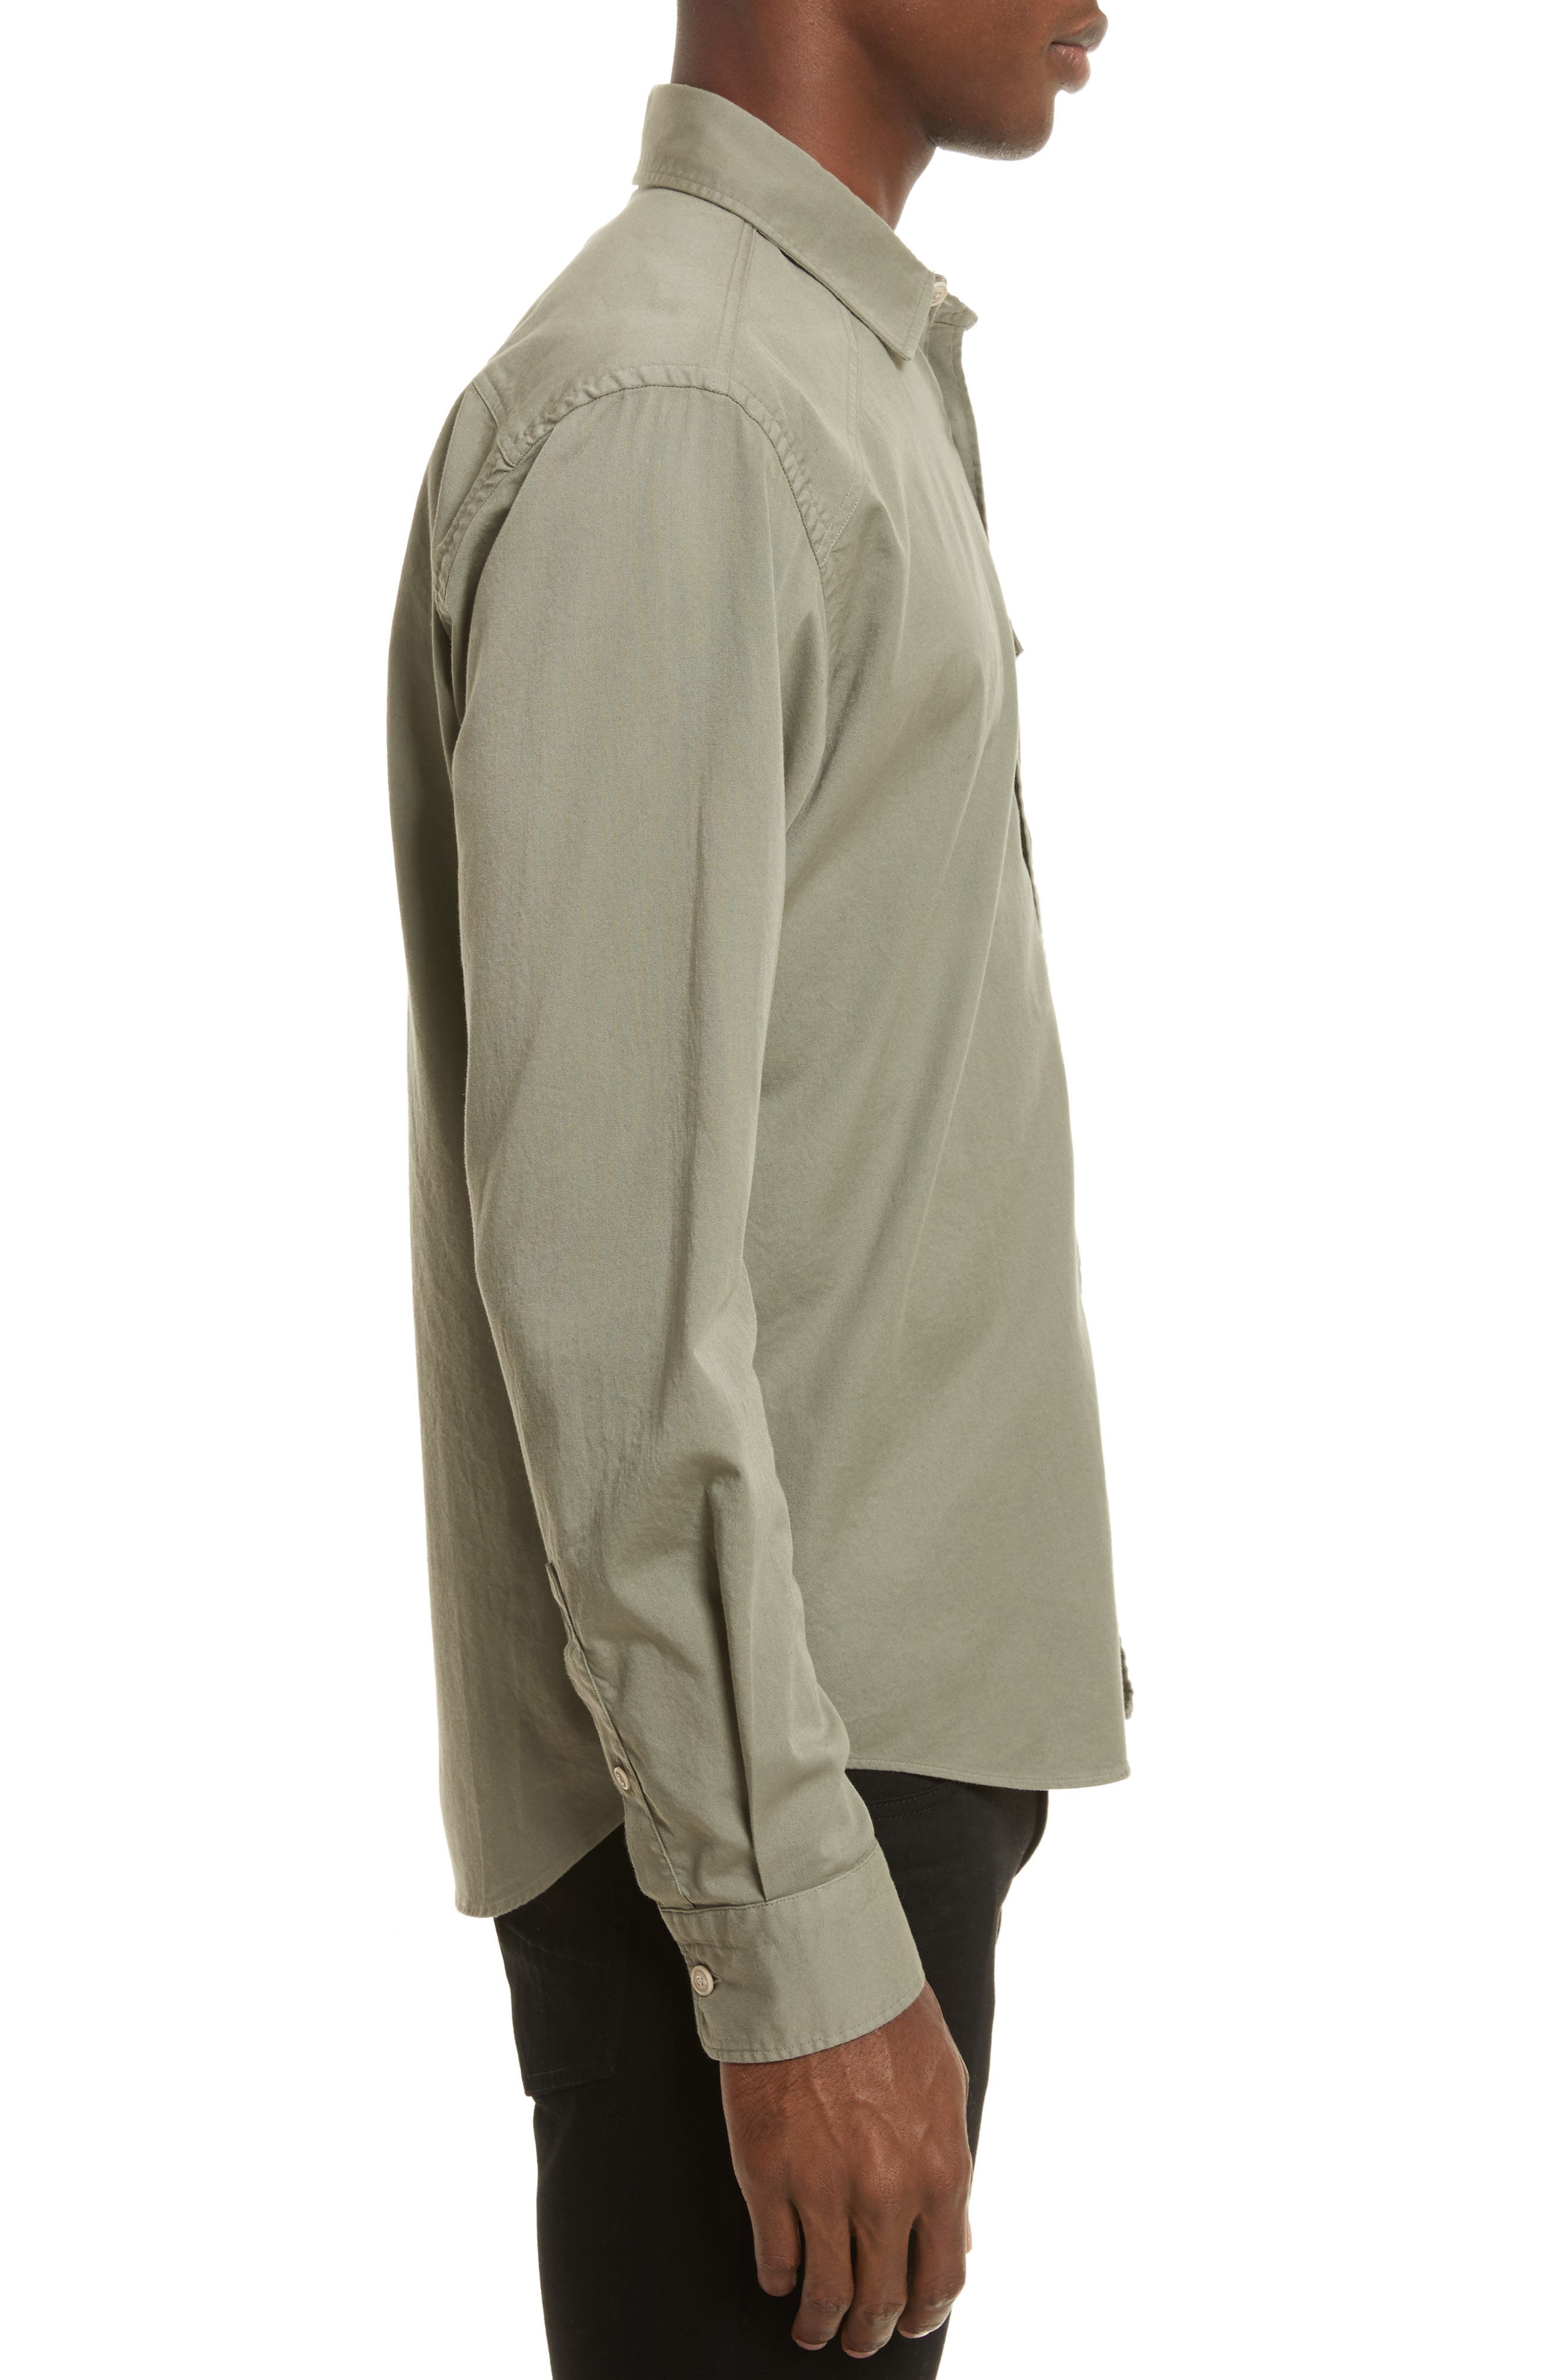 Steadway Extra Slim Fit Sport Shirt,                             Alternate thumbnail 3, color,                             033